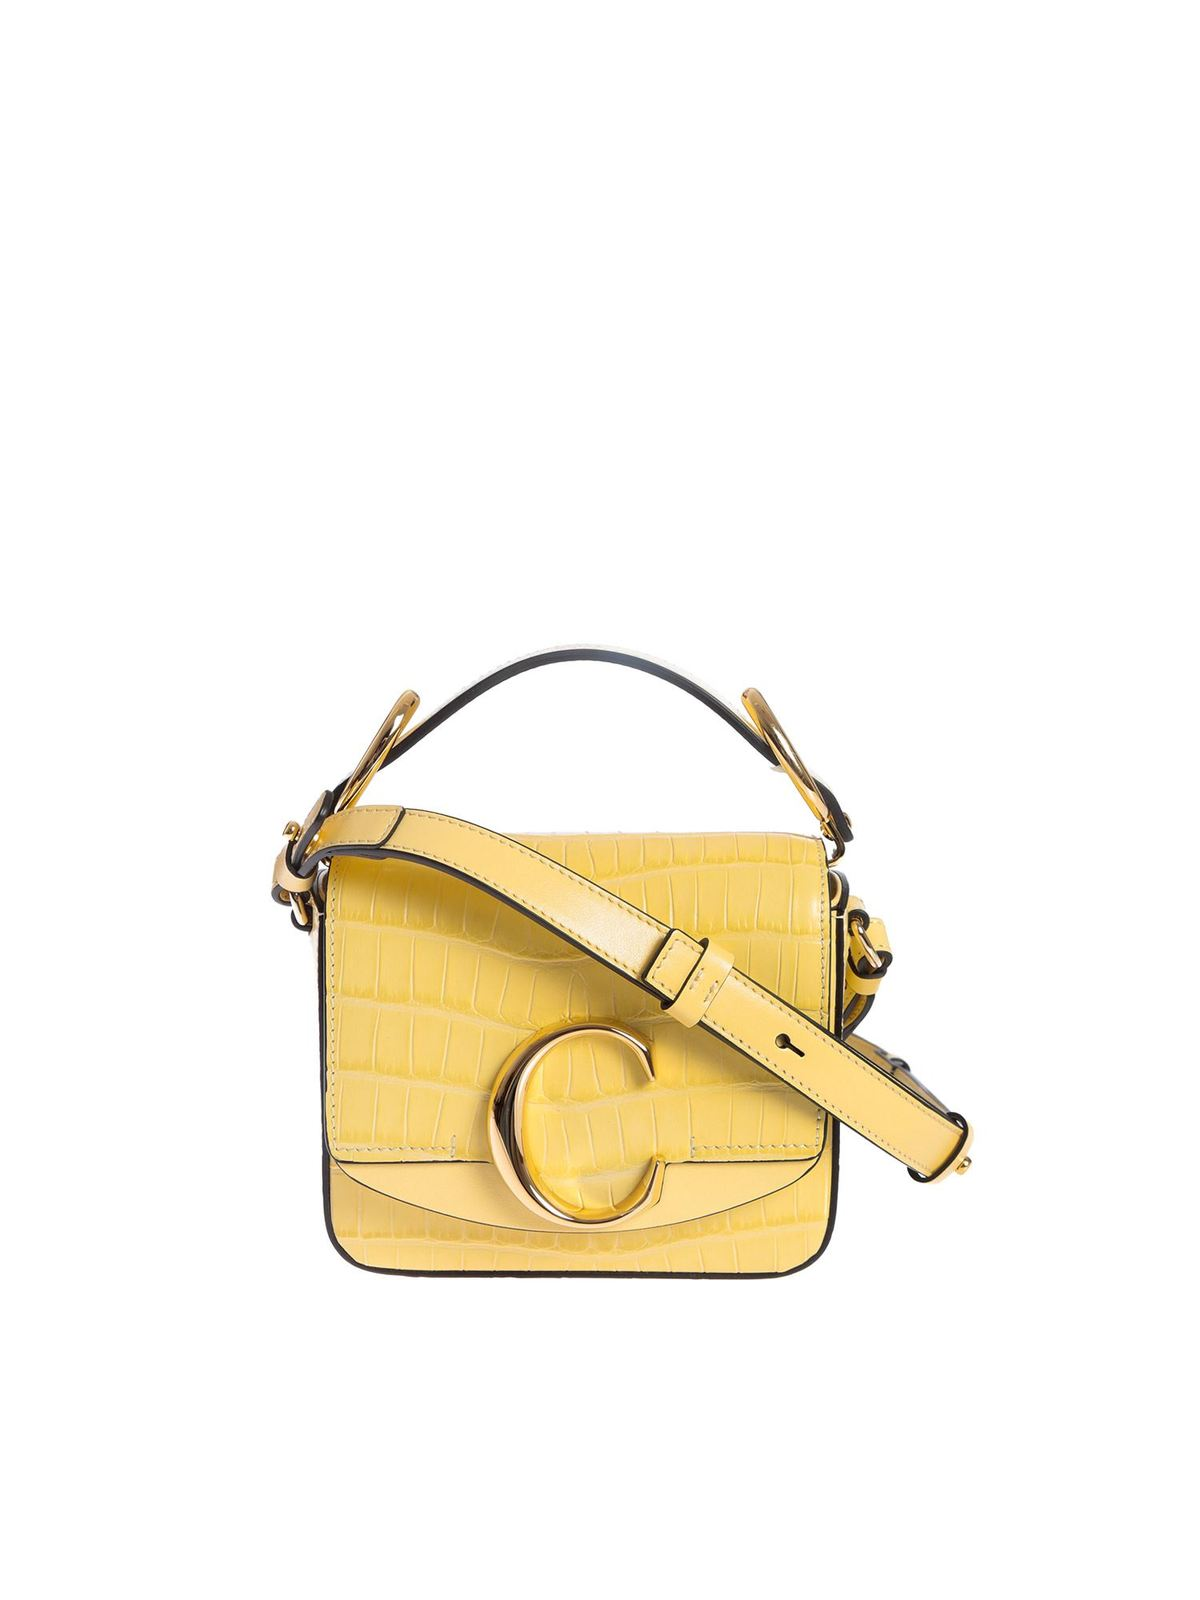 Chloé Leathers MINI SQUARE BAG IN SOFTY YELLOW